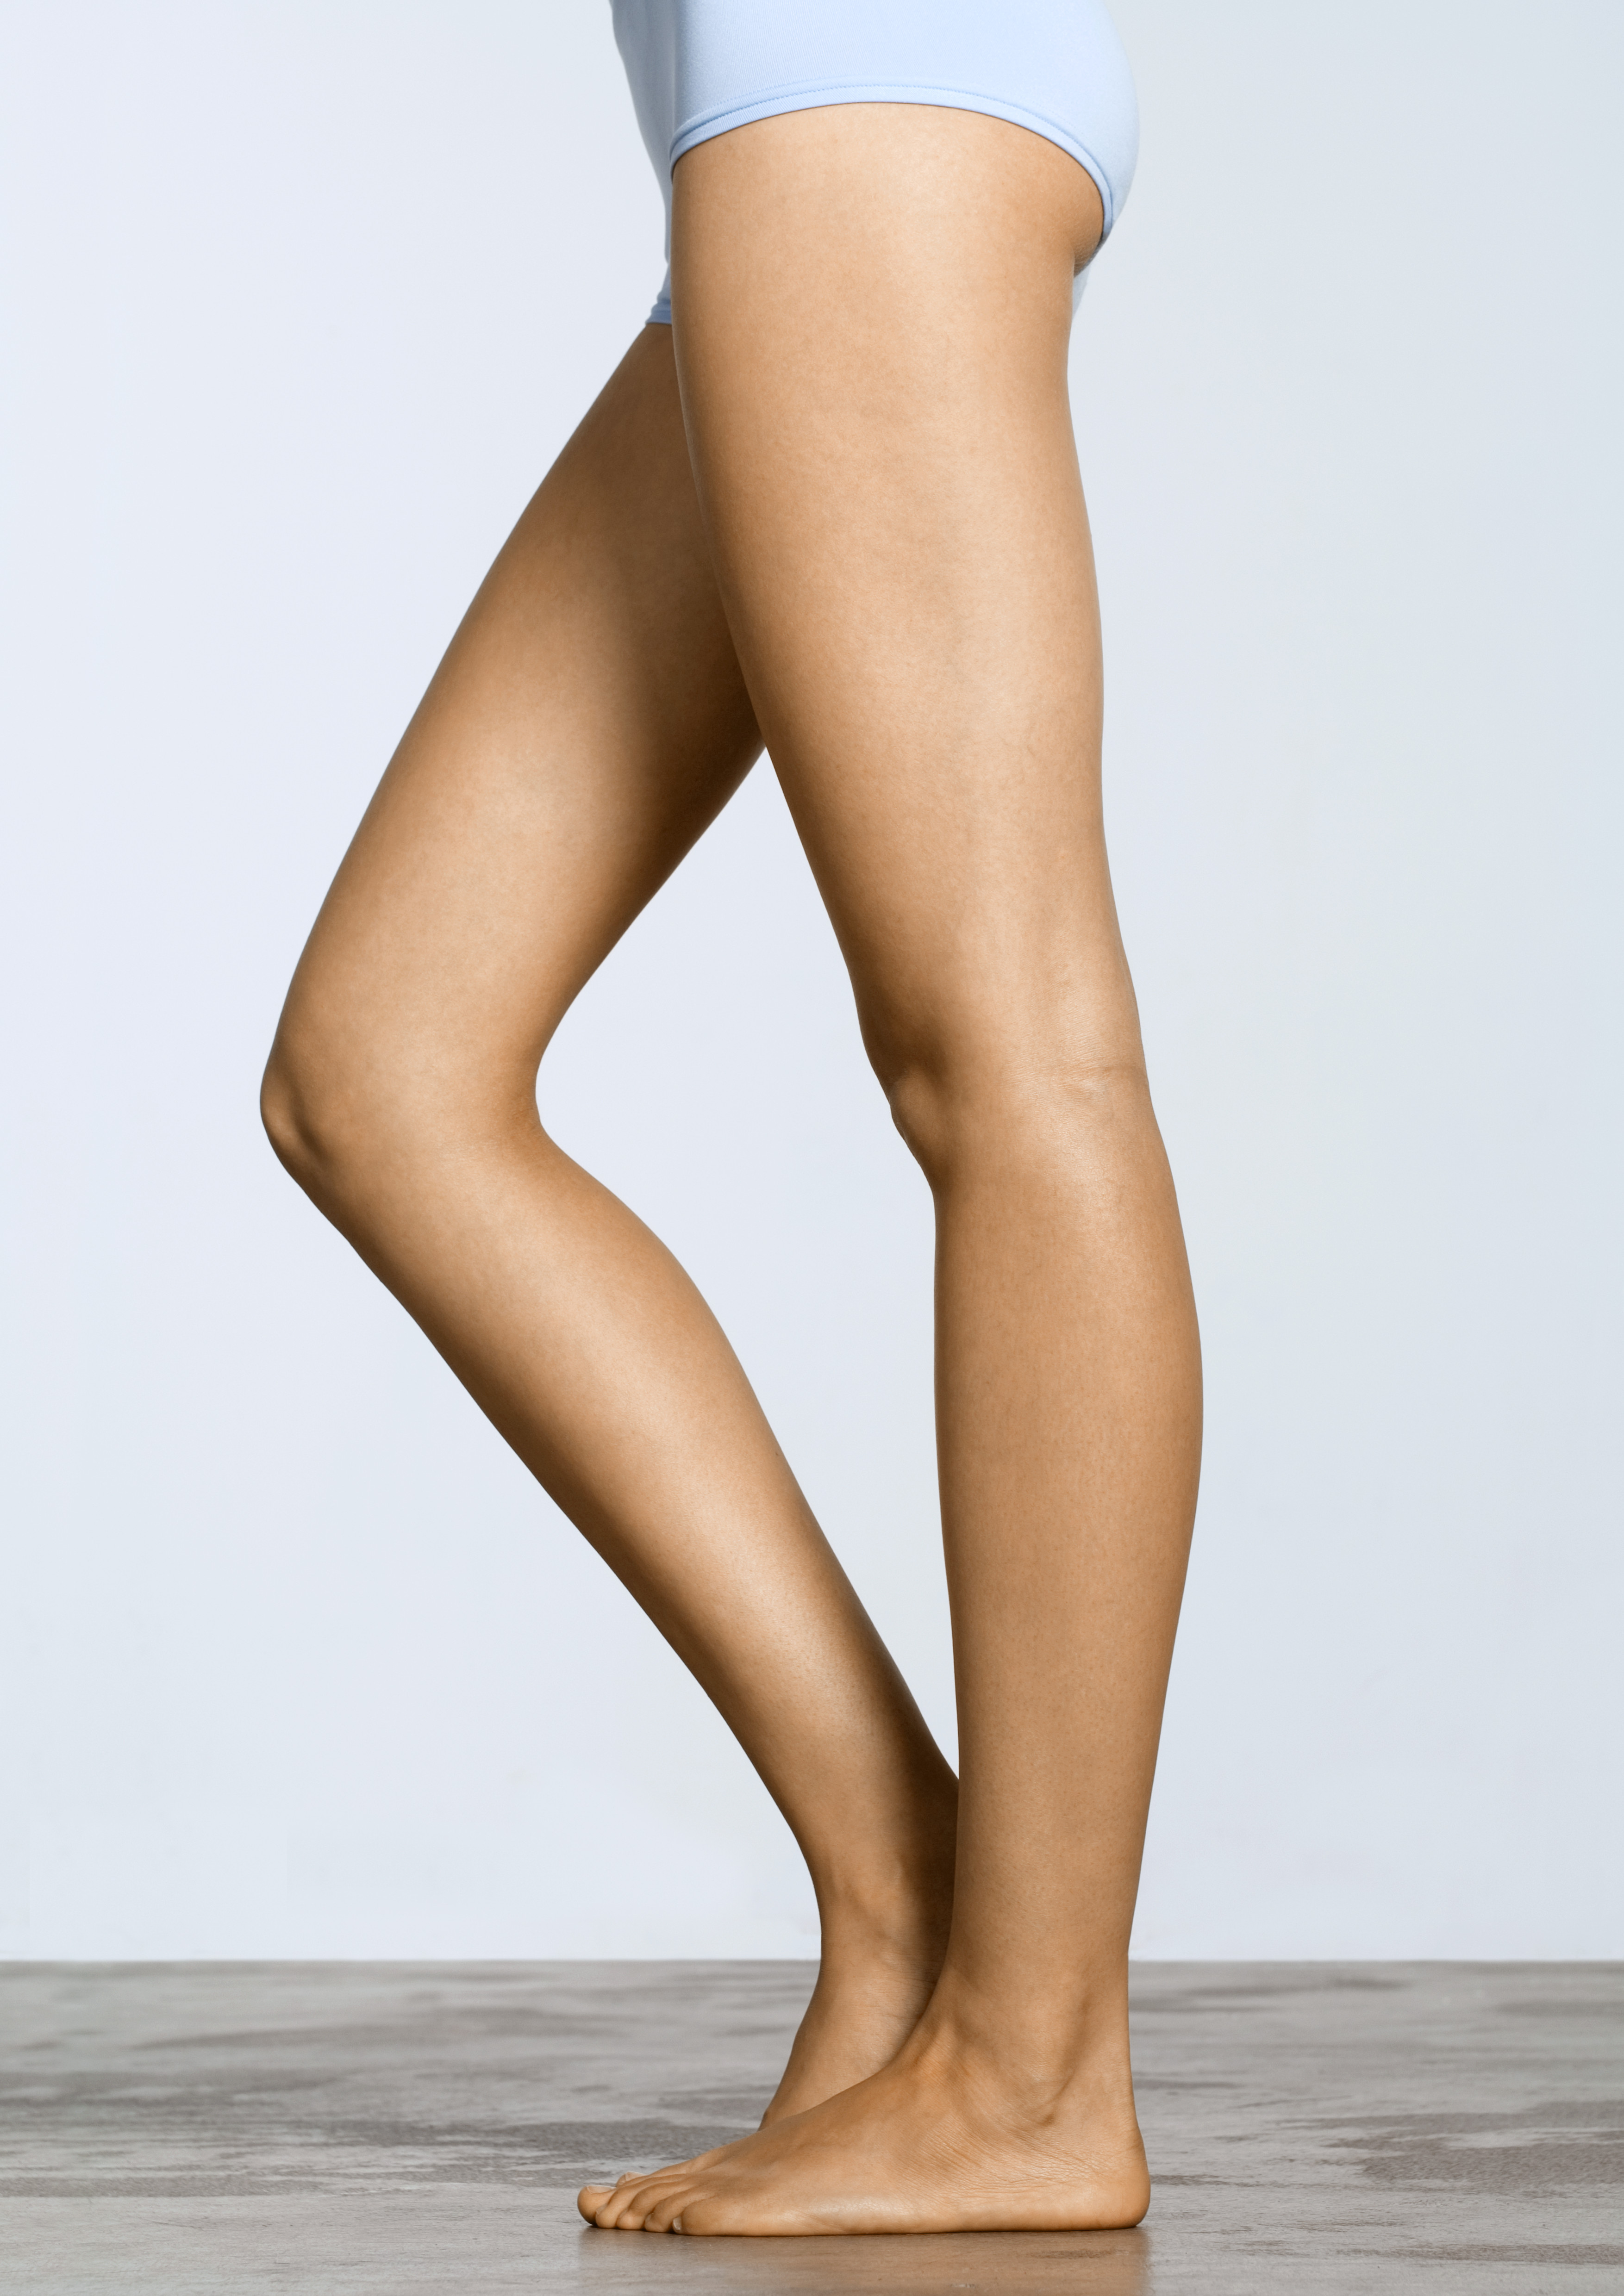 Smooth Legs Before Wedding, Laser Hair Removal